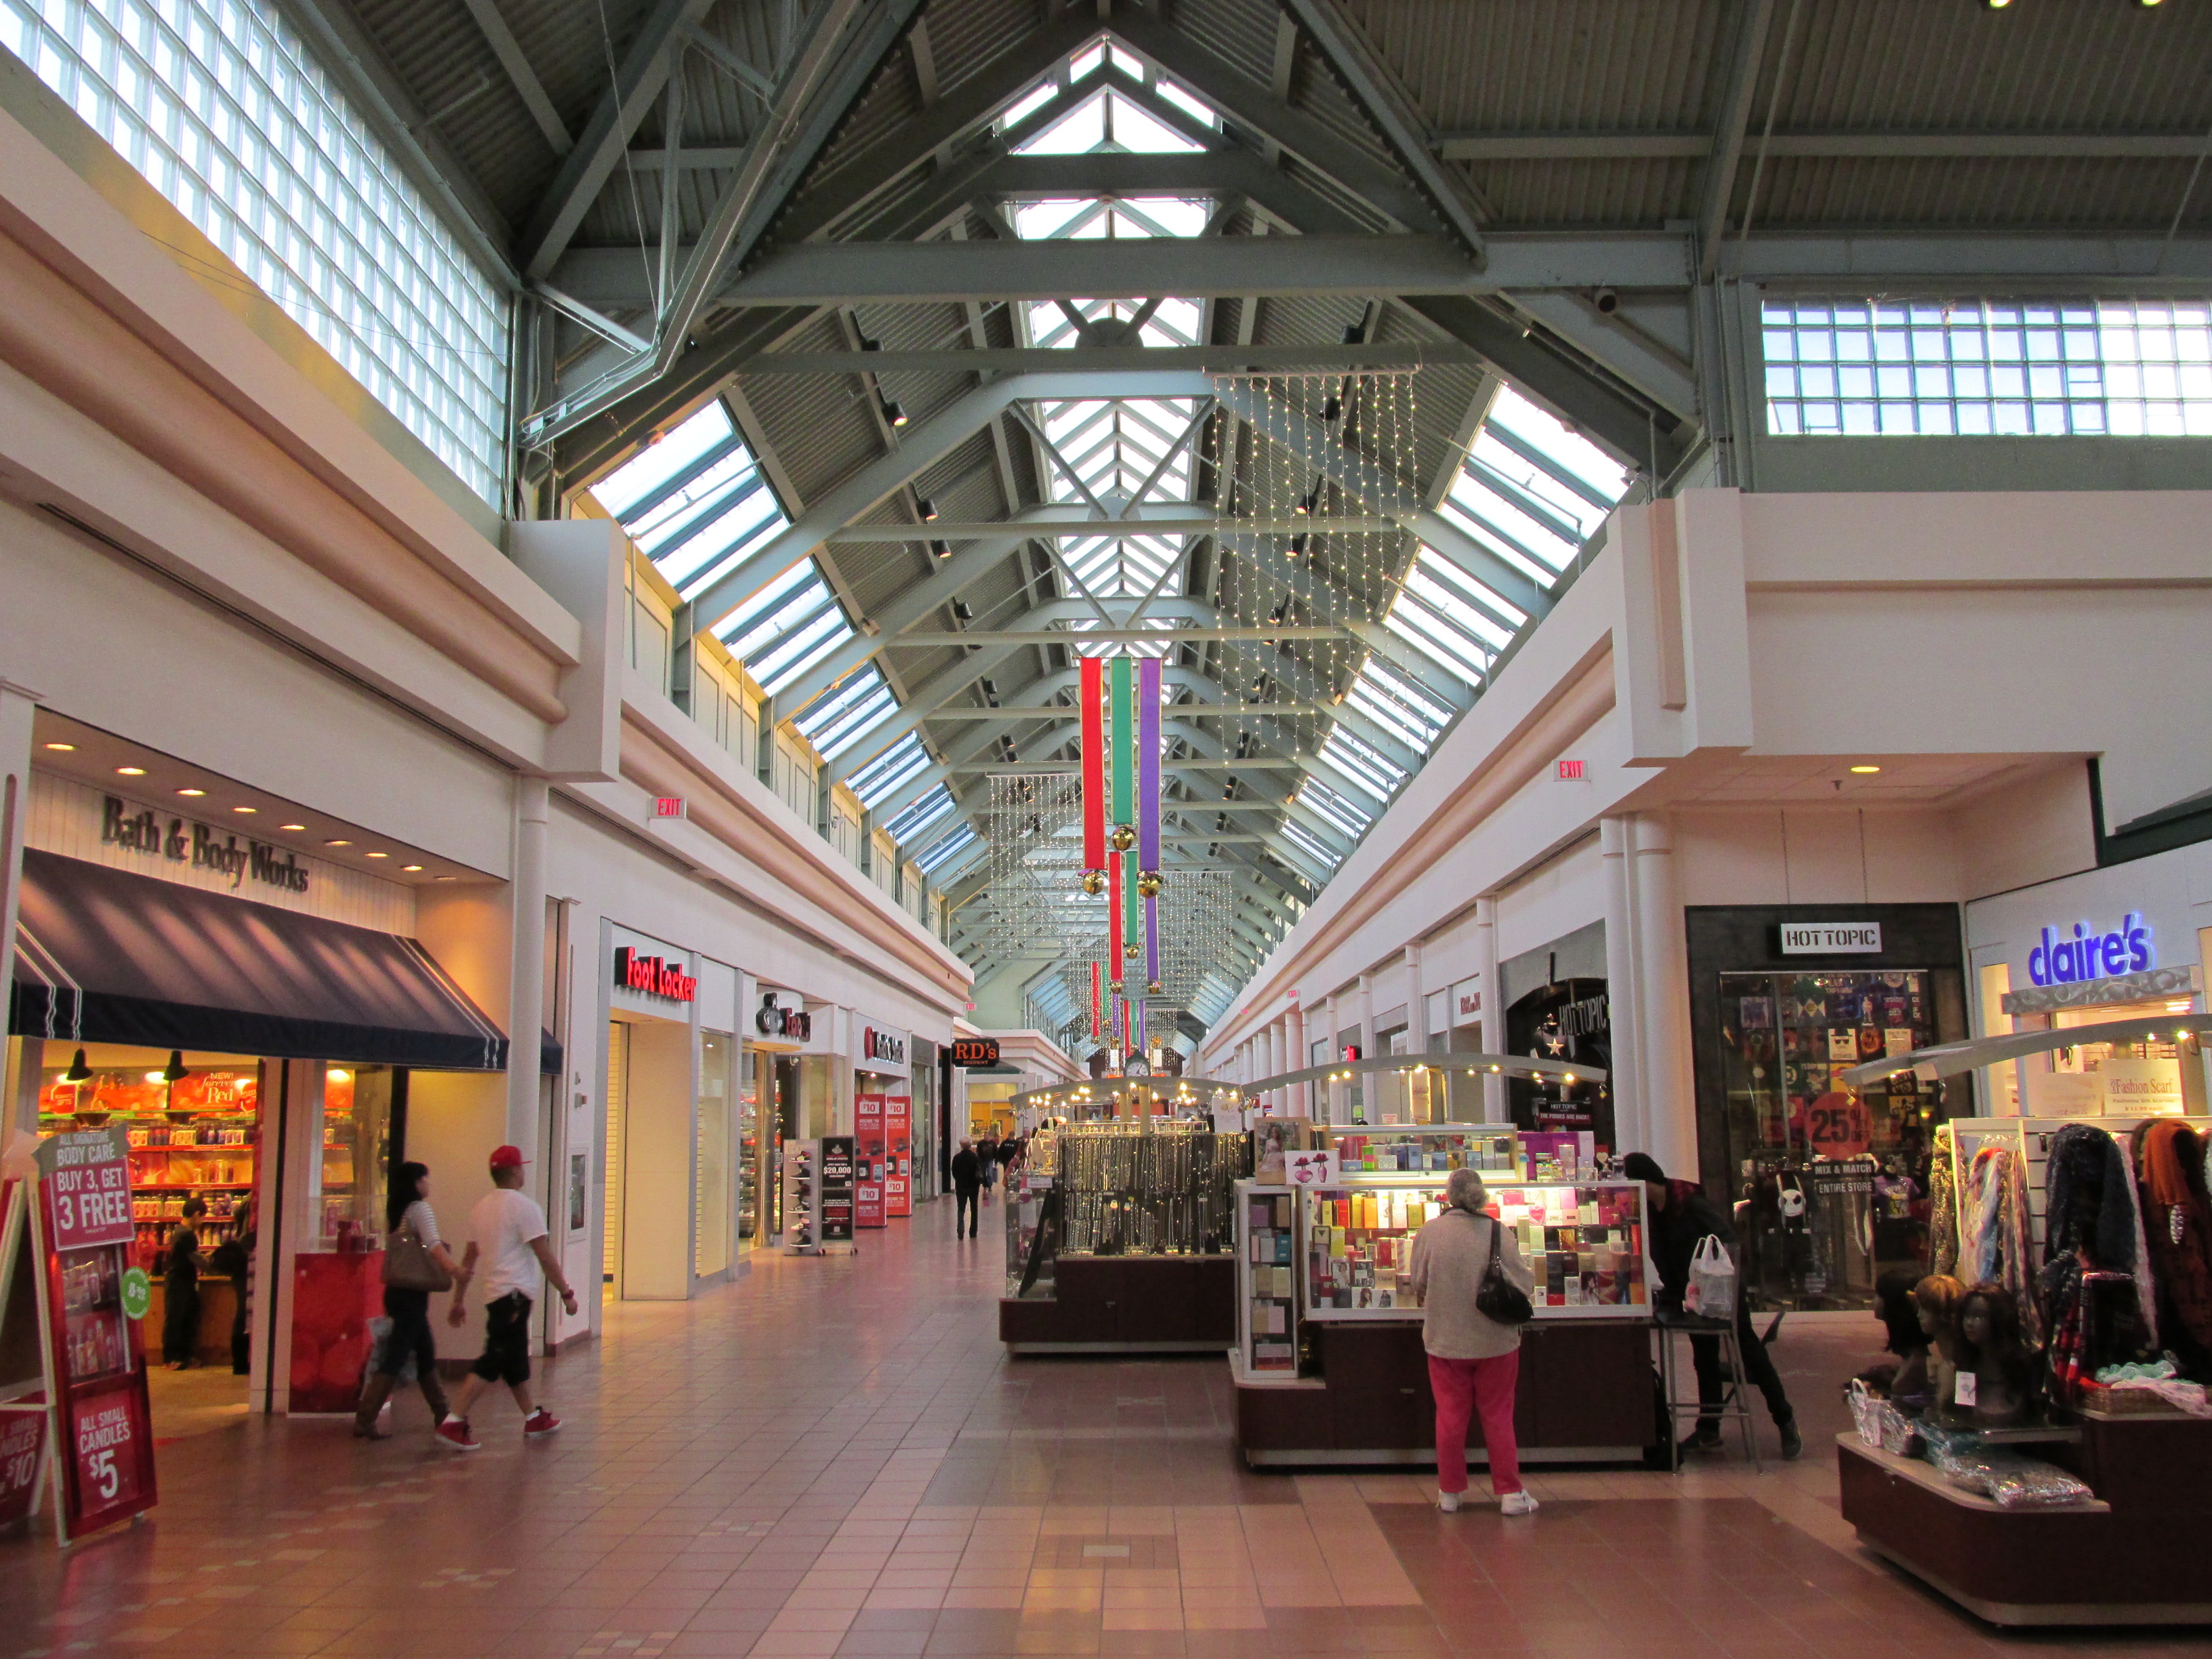 Apologies for the home state neglect. Let's take a break from the Noo Yawka barrage with a mall that even a lot of people living in the Boston area may not know about. The Walpole Mall is the only enclosed mall serving Boston's southwest suburbs, along the US1 and I corridor. There is another, larger [ ].